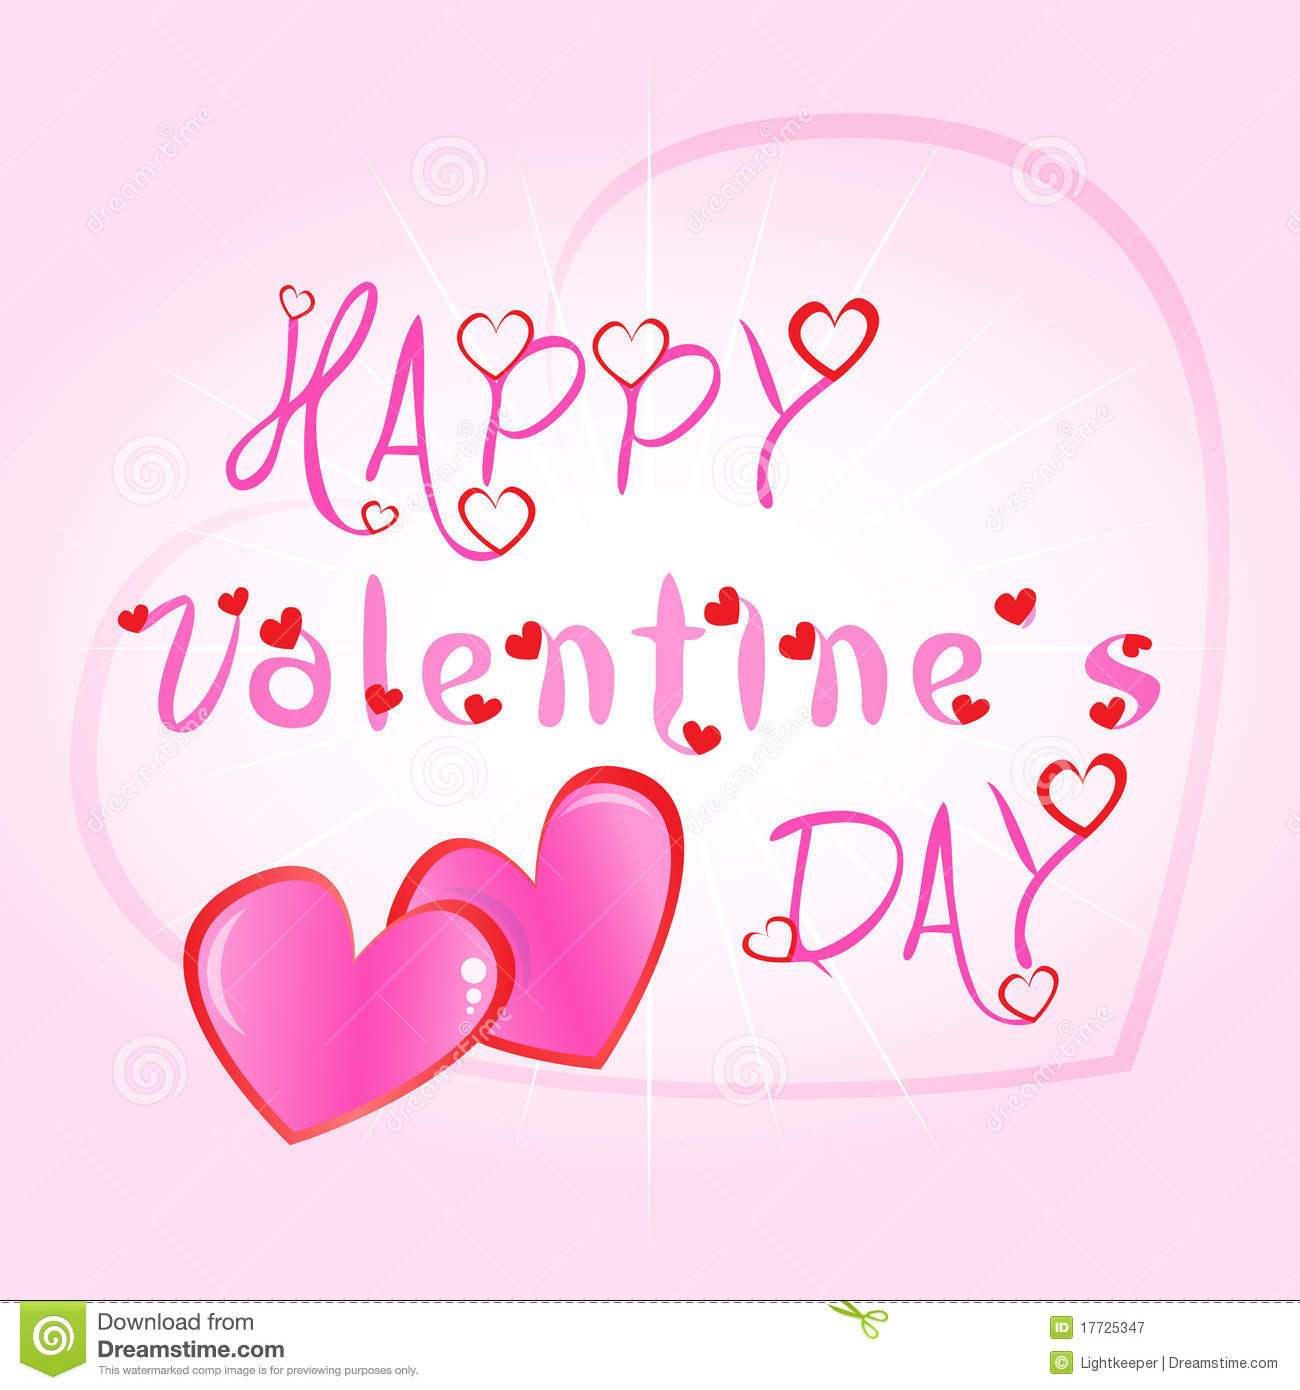 happy valentines day greeting card illustration - Happy Valentines Day Wishes